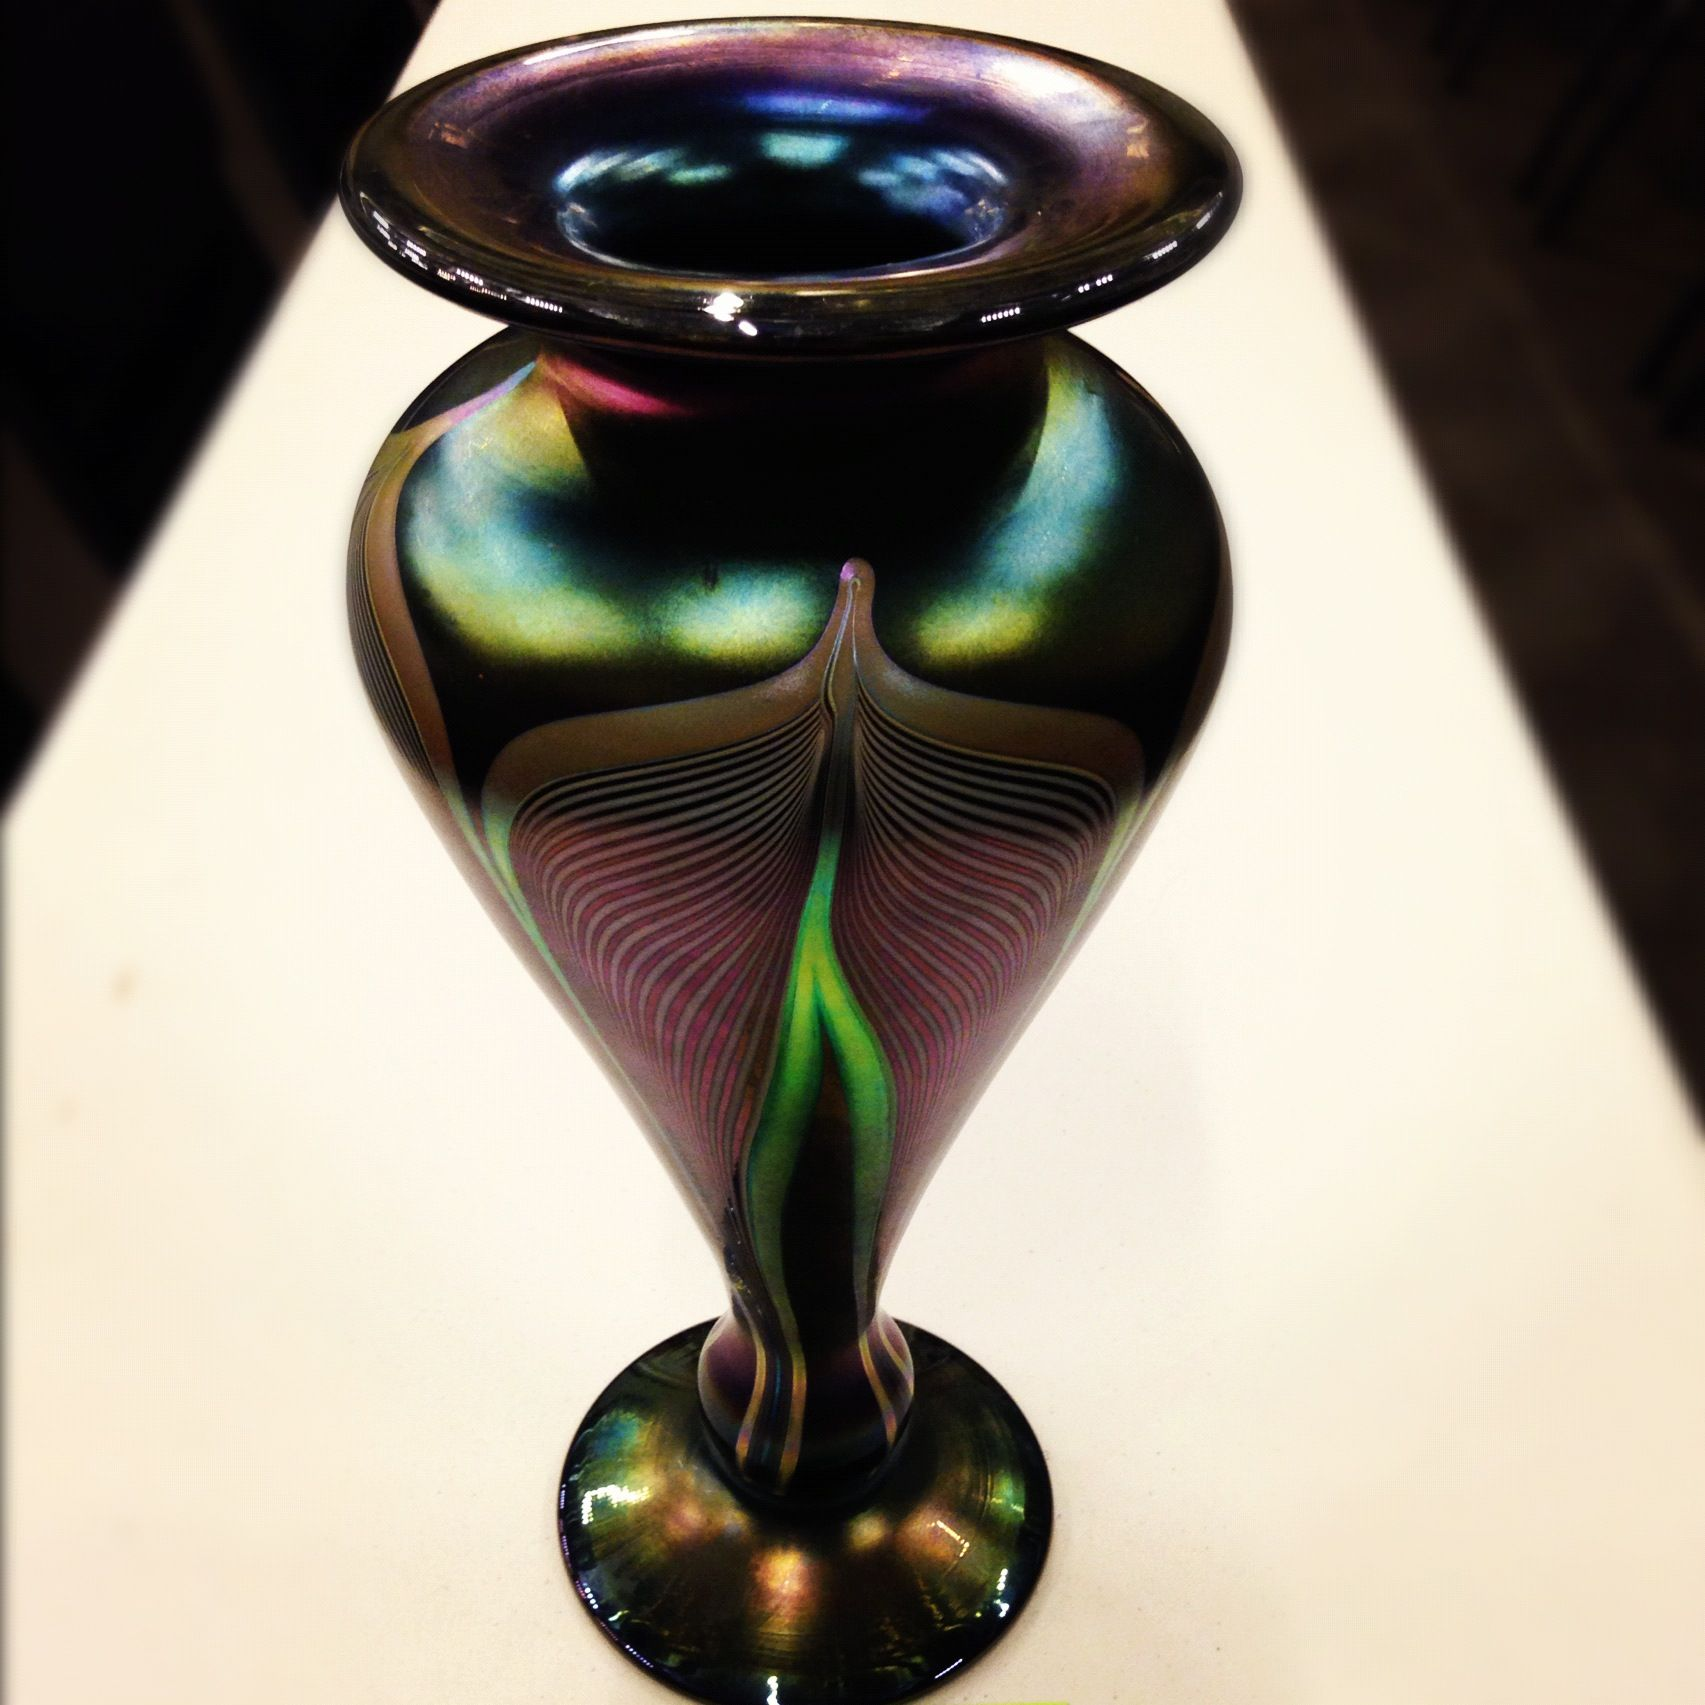 A beautiful blown glass art vase which is signed abelman a beautiful blown glass art vase which is signed abelman numbered v340 reviewsmspy